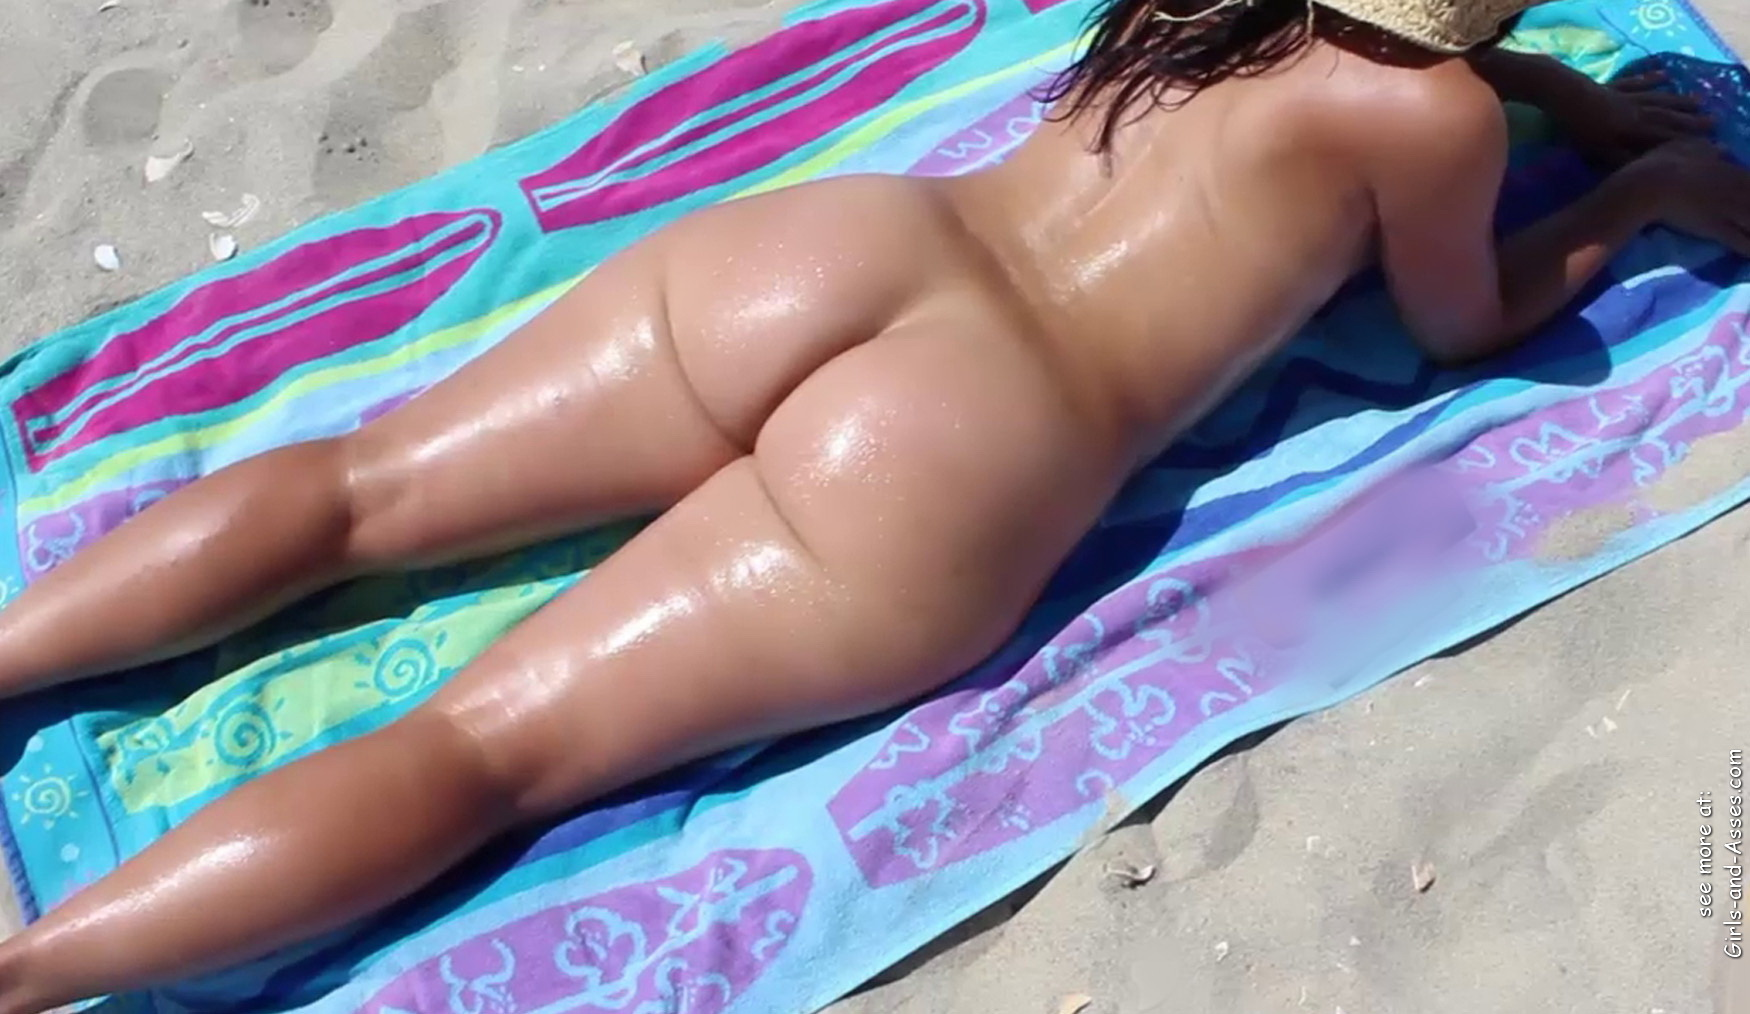 naked sunbathing tanning on the beach pic 00140